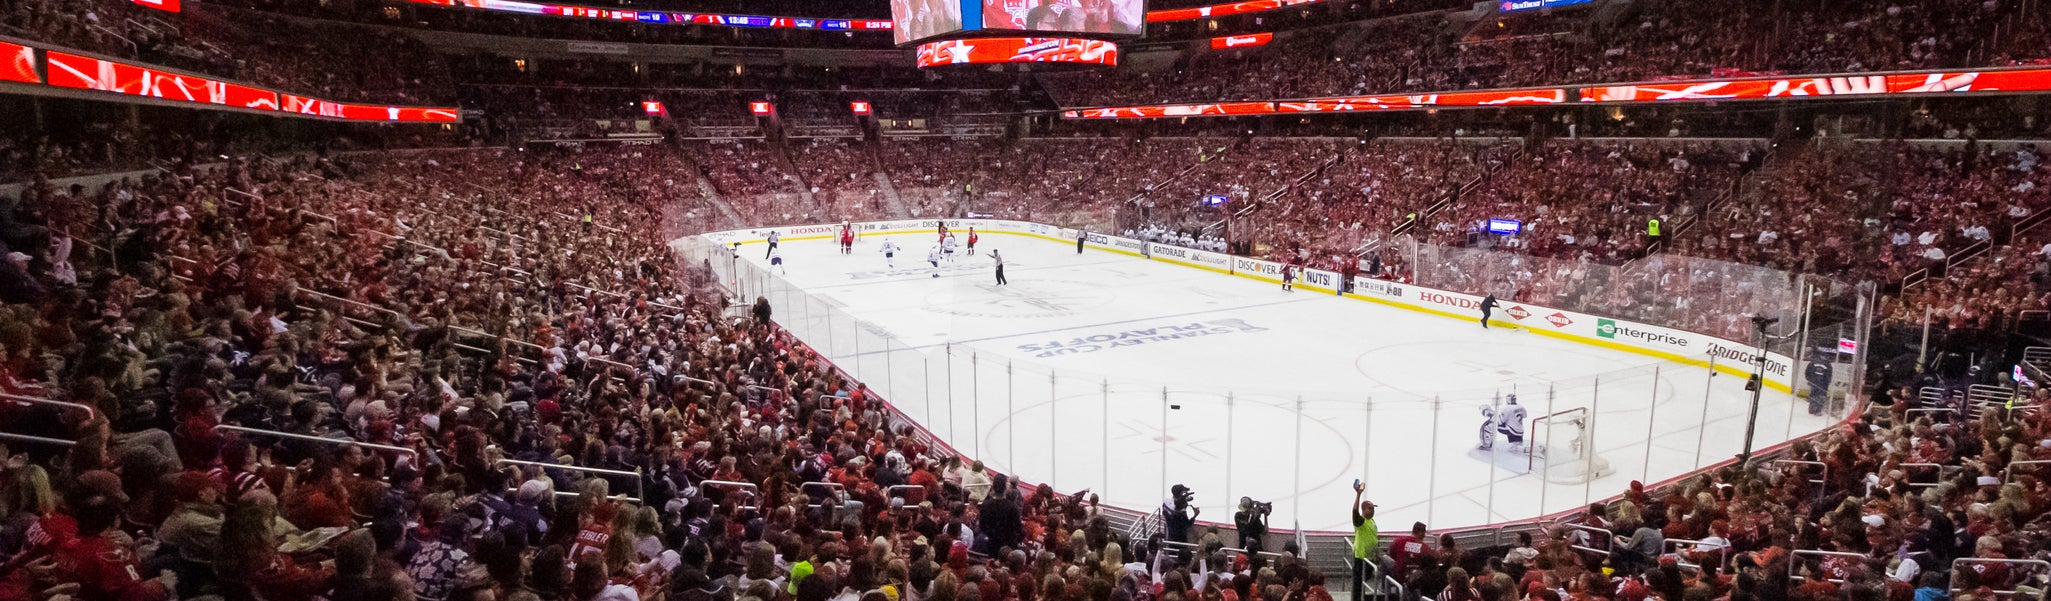 Seat view from LL Preferred 114 at Capital One Arena